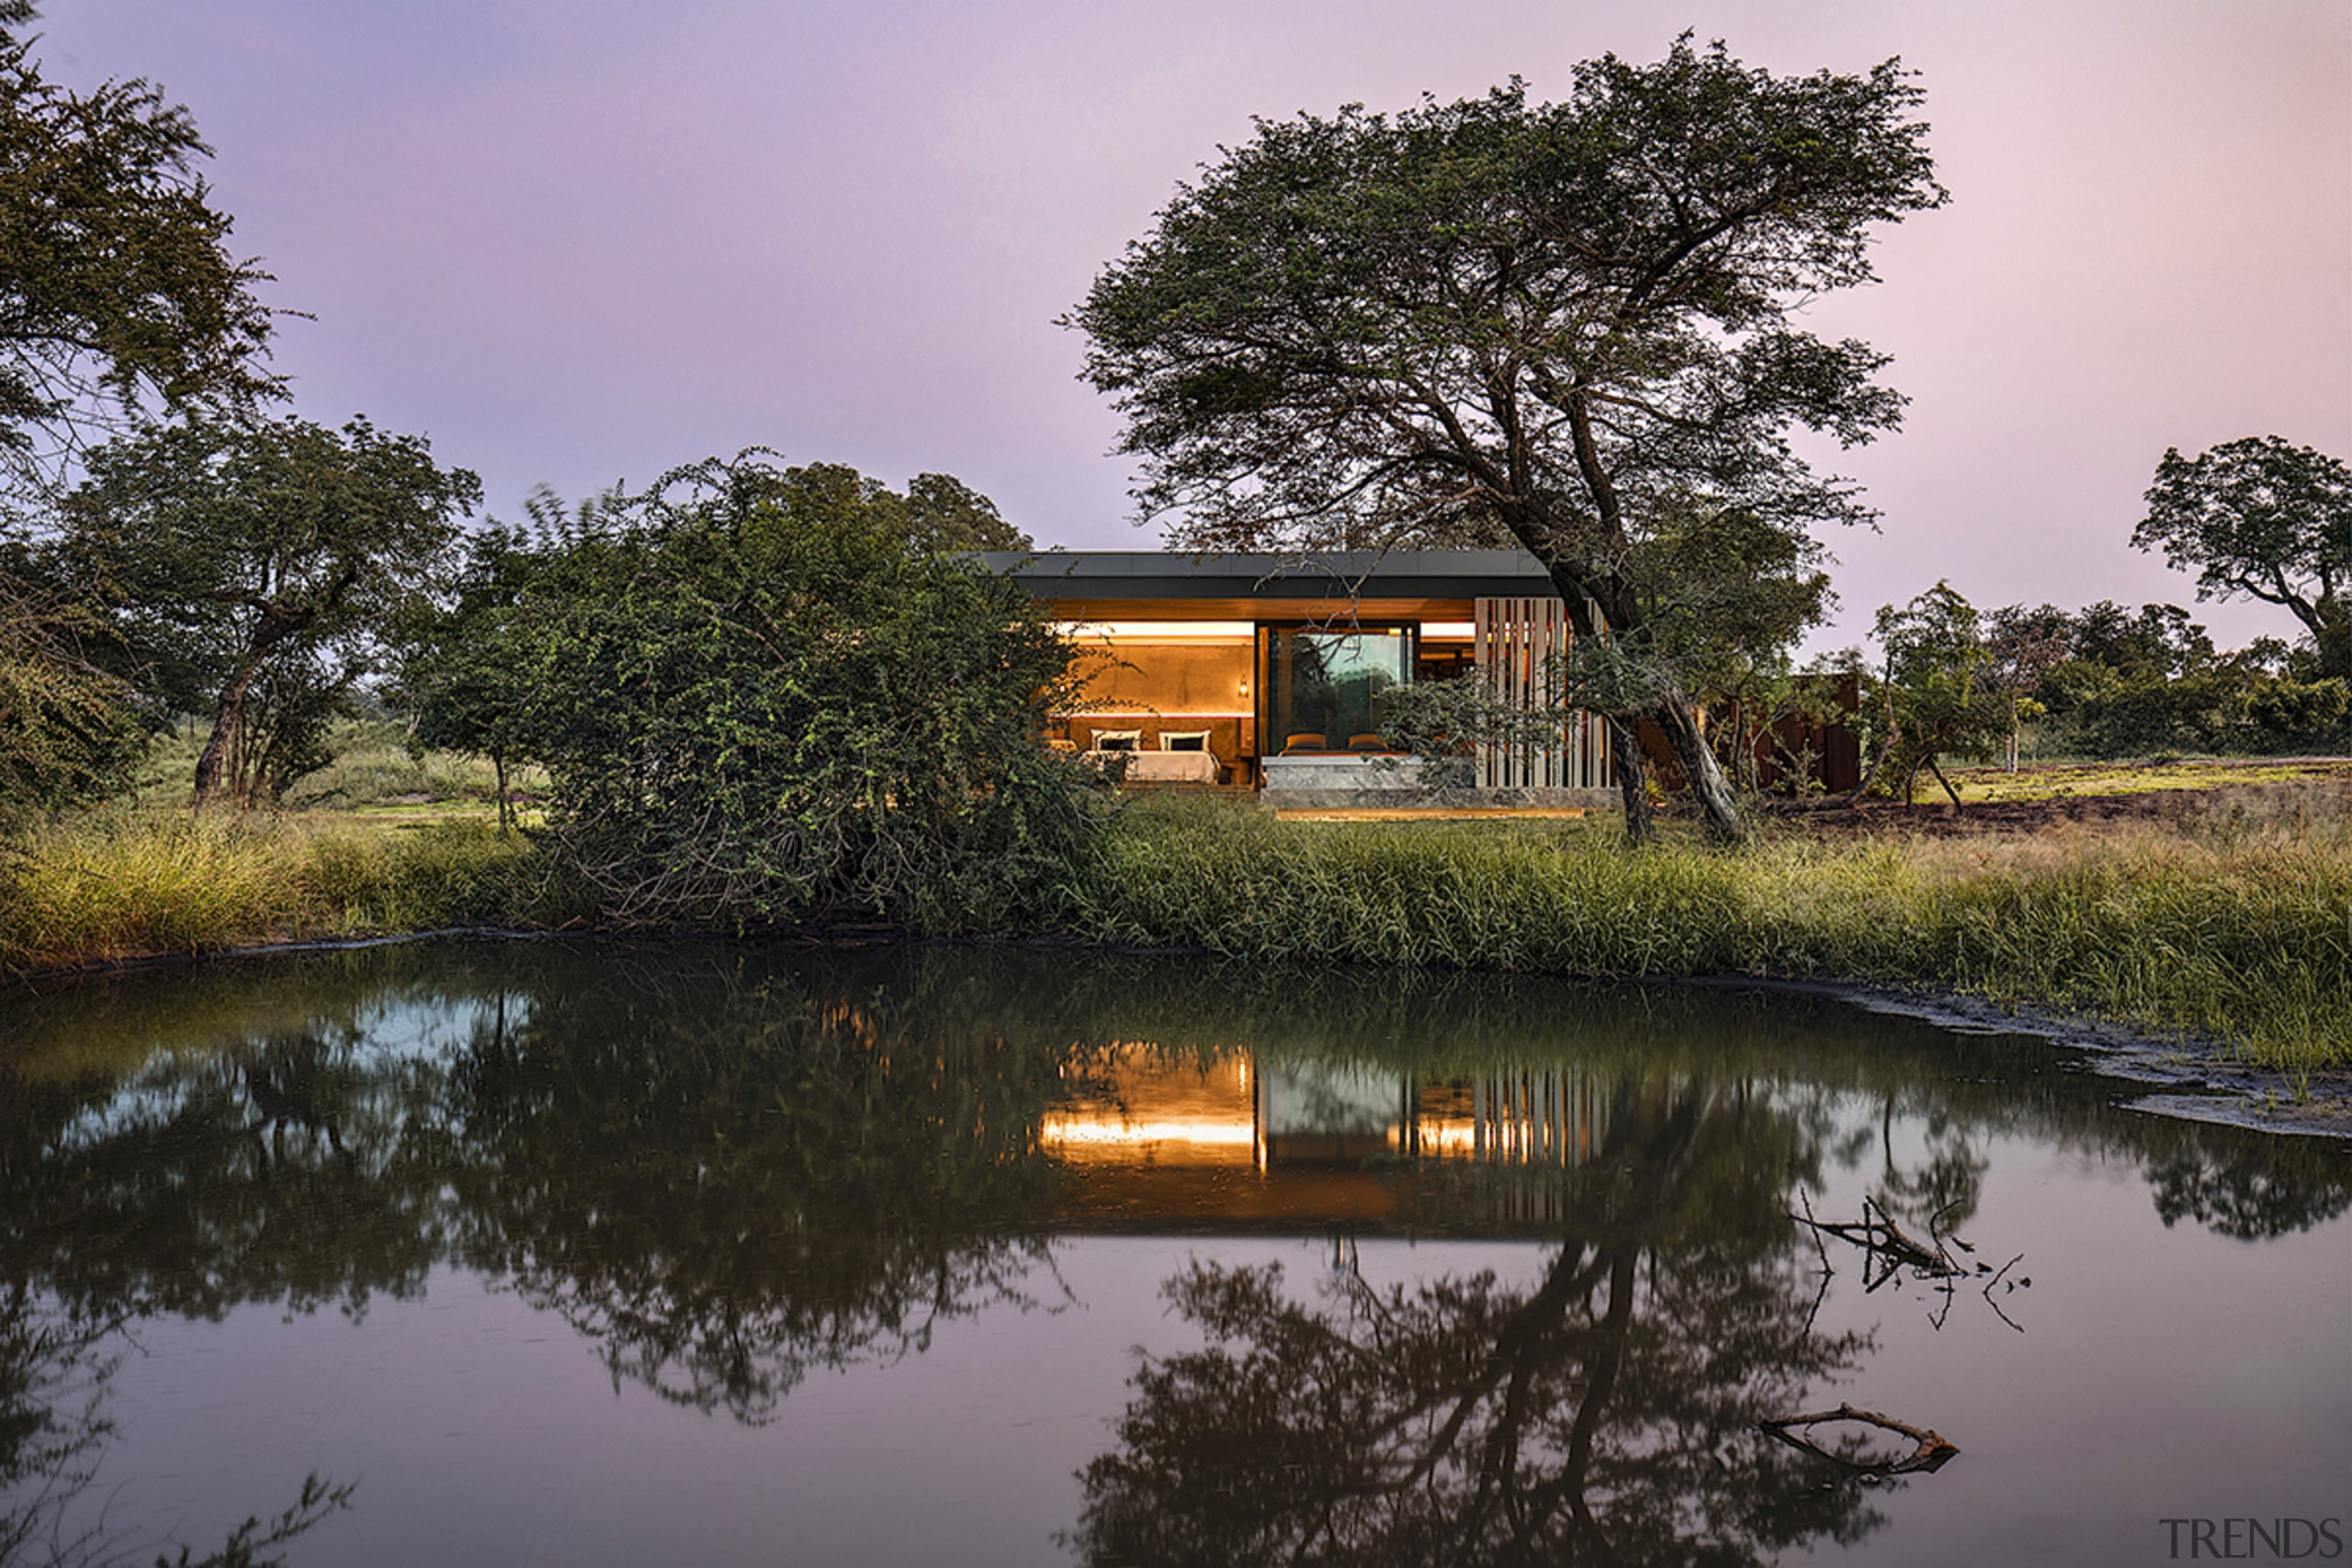 Cheetah Plains – by ARRCC – connects with architecture, bank, bayou, calm, evening, floodplain, home, house, lake, landscape, marsh, morning, natural environment, natural landscape, nature, nature reserve, plant, pond, reflection, river, rural area, sky, tree, water, watercourse, waterway, wetland, wildlife, black, gray